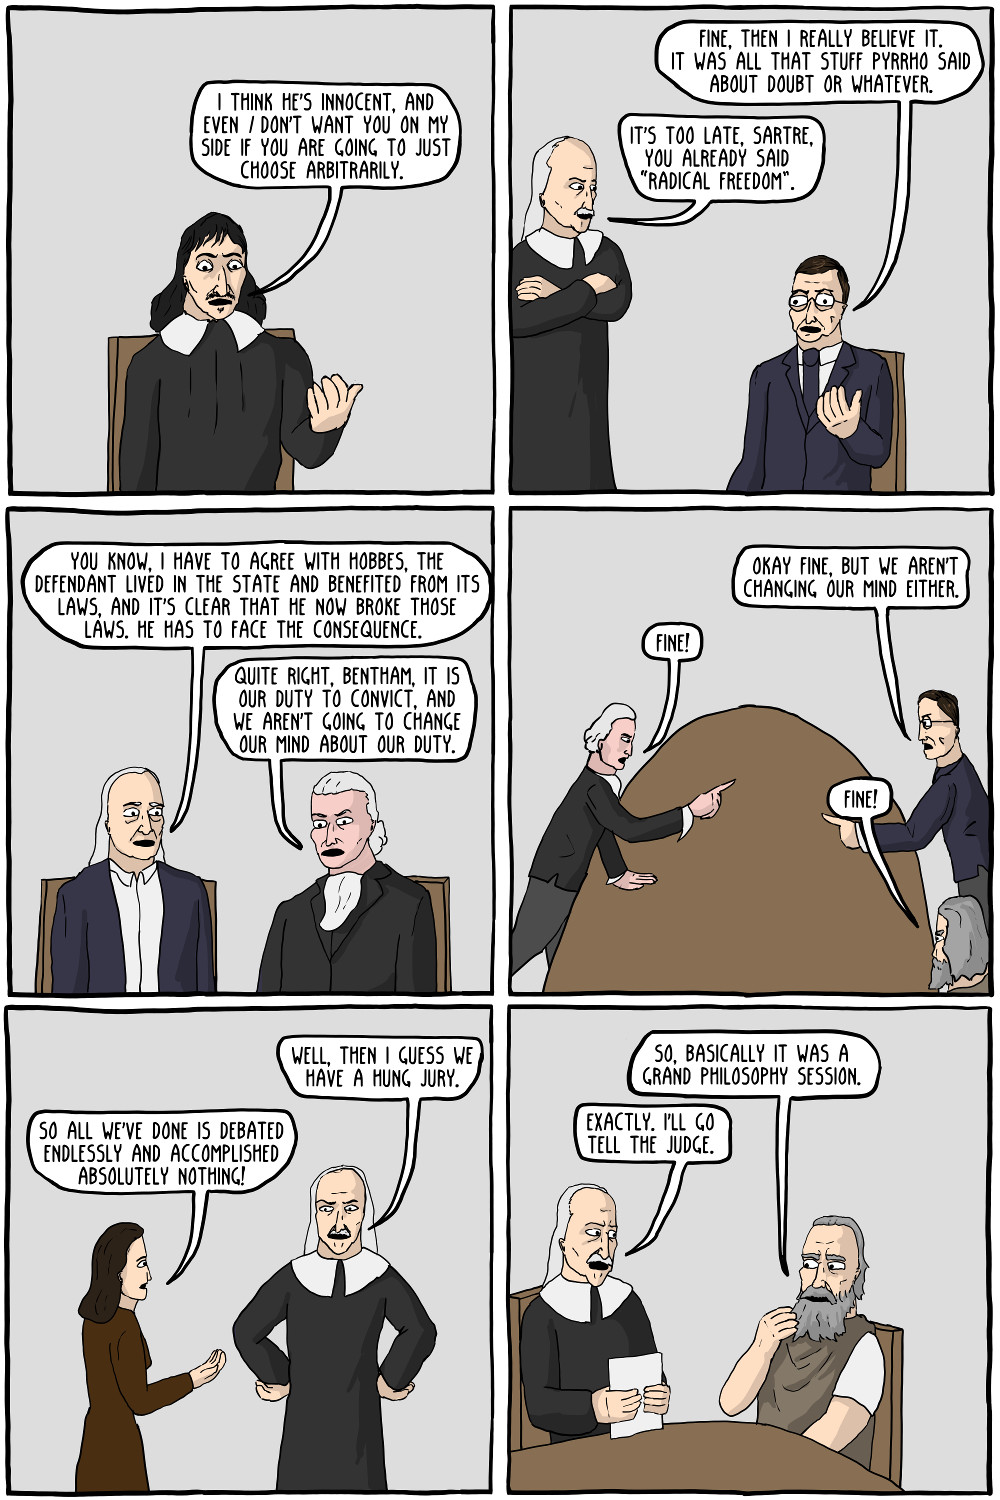 What? You didn't expect twelve philosophers to agree on something did you?